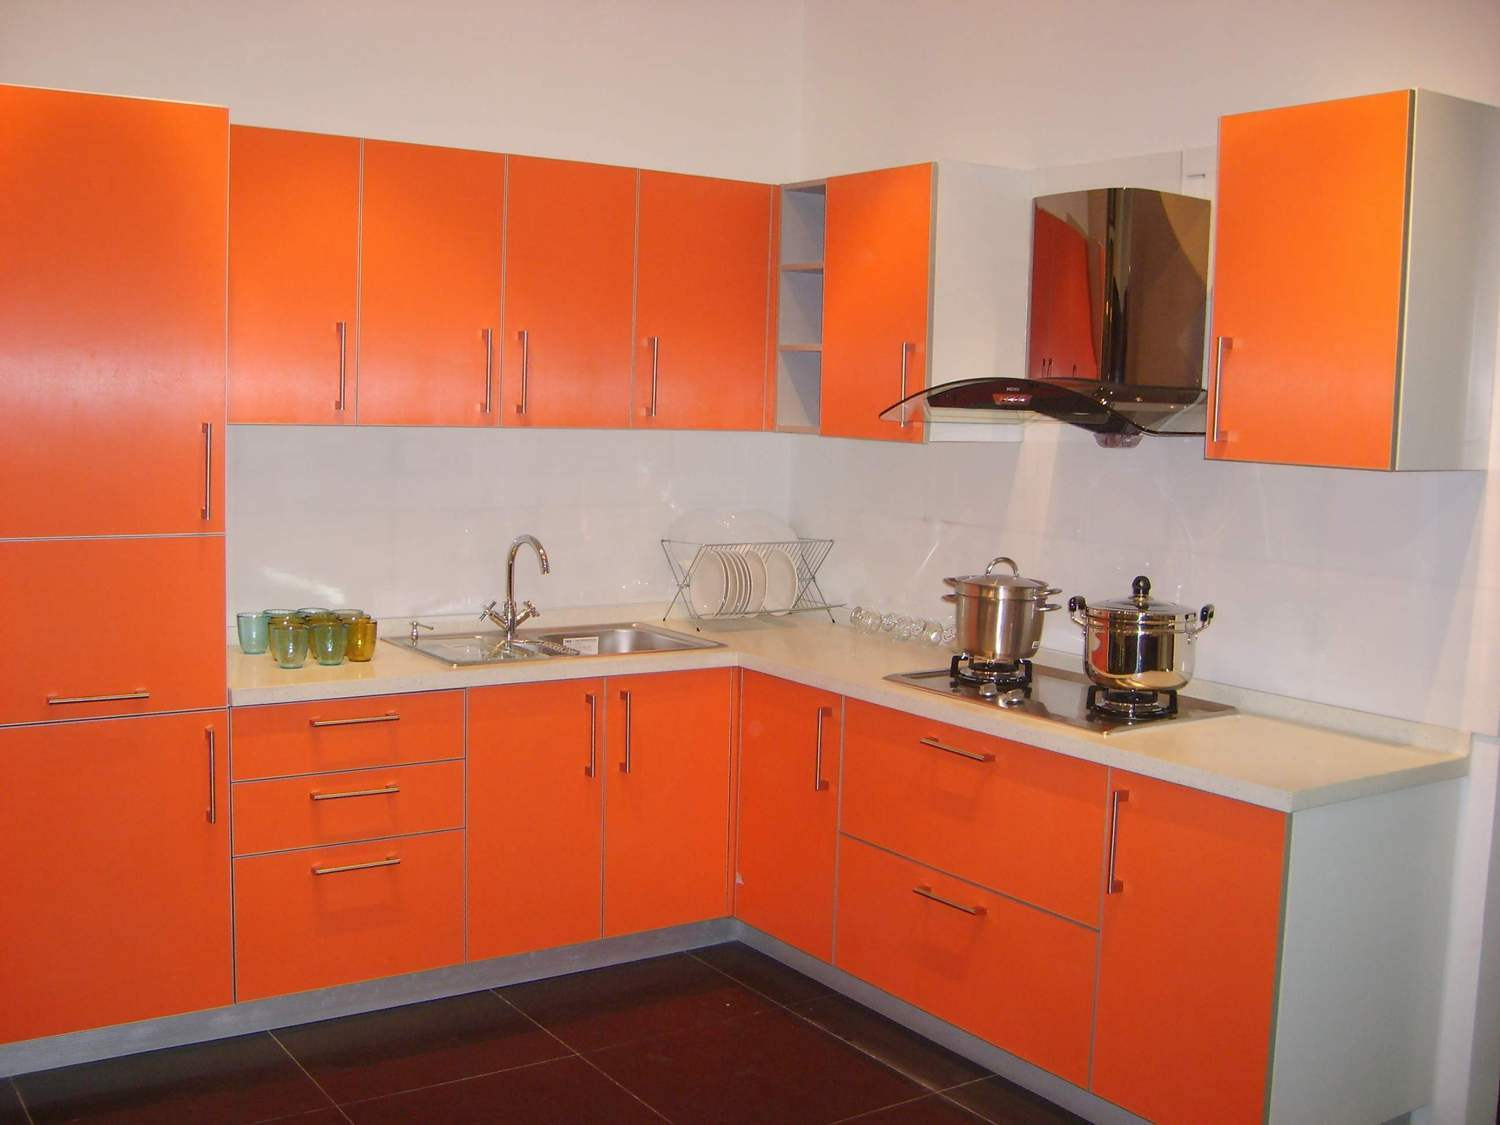 Kitchens Cabinets  China Kitchen Cabinets, Wooden Kitchen Furniture